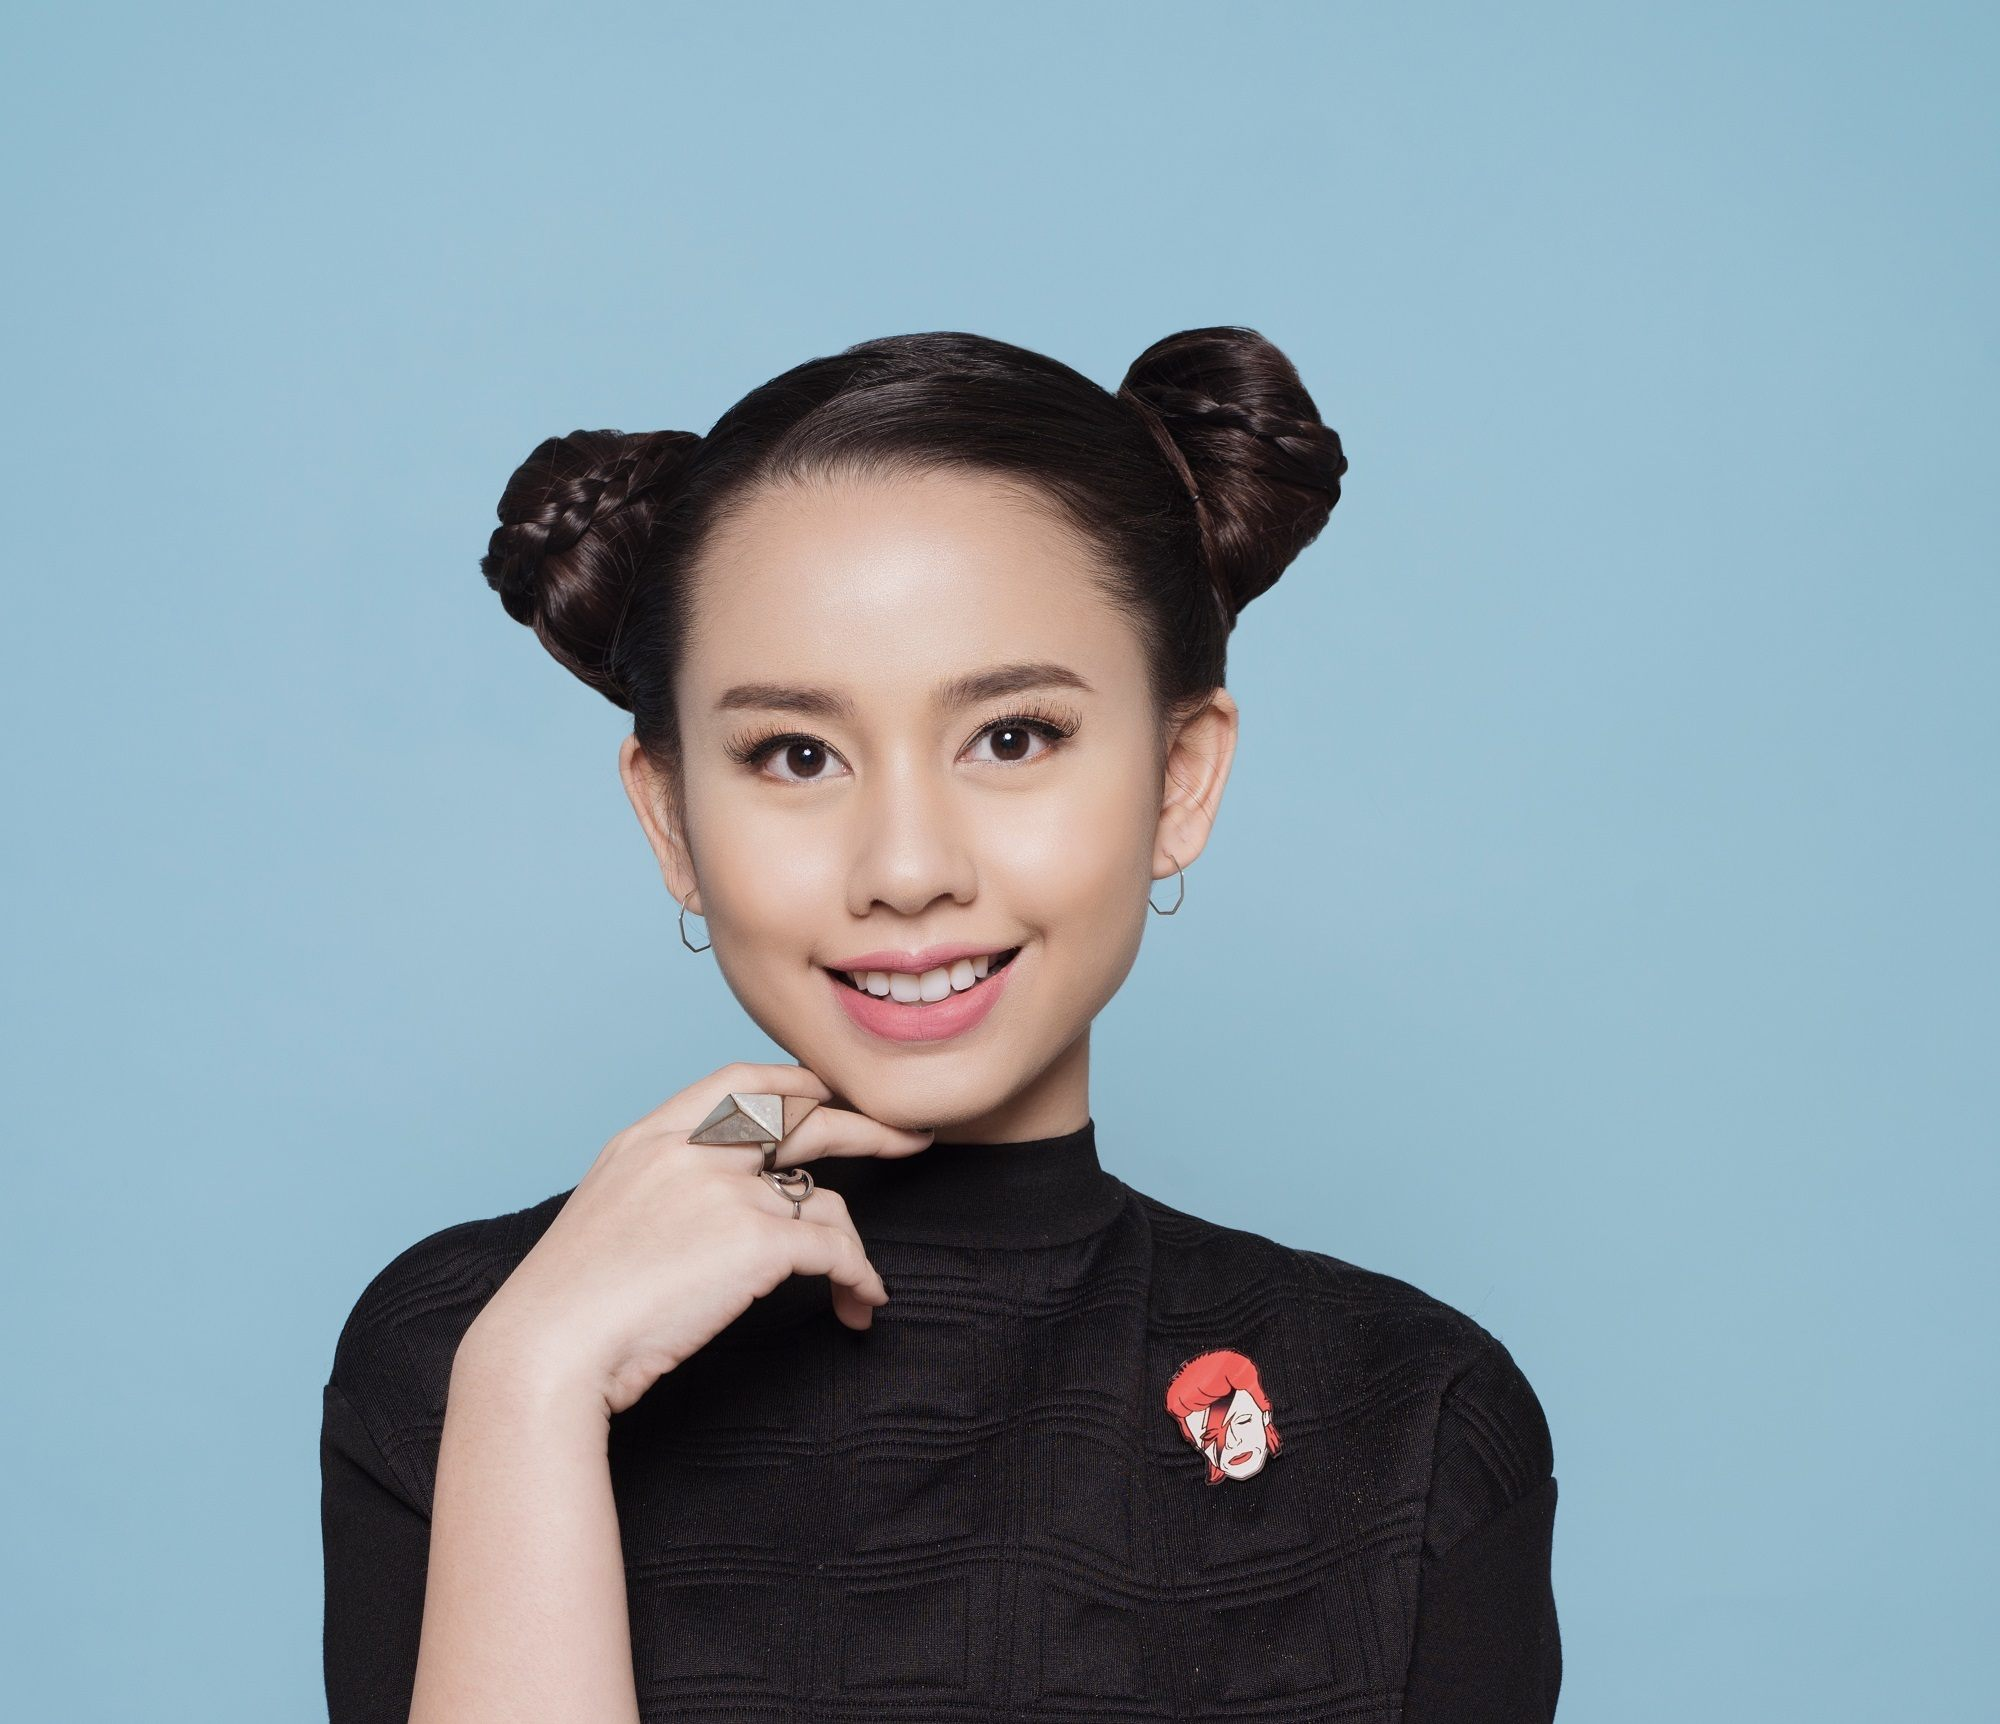 Asian girl with hair in two side buns against blue background to represent users of new Sunsilk Smooth and Manageable Shampoo